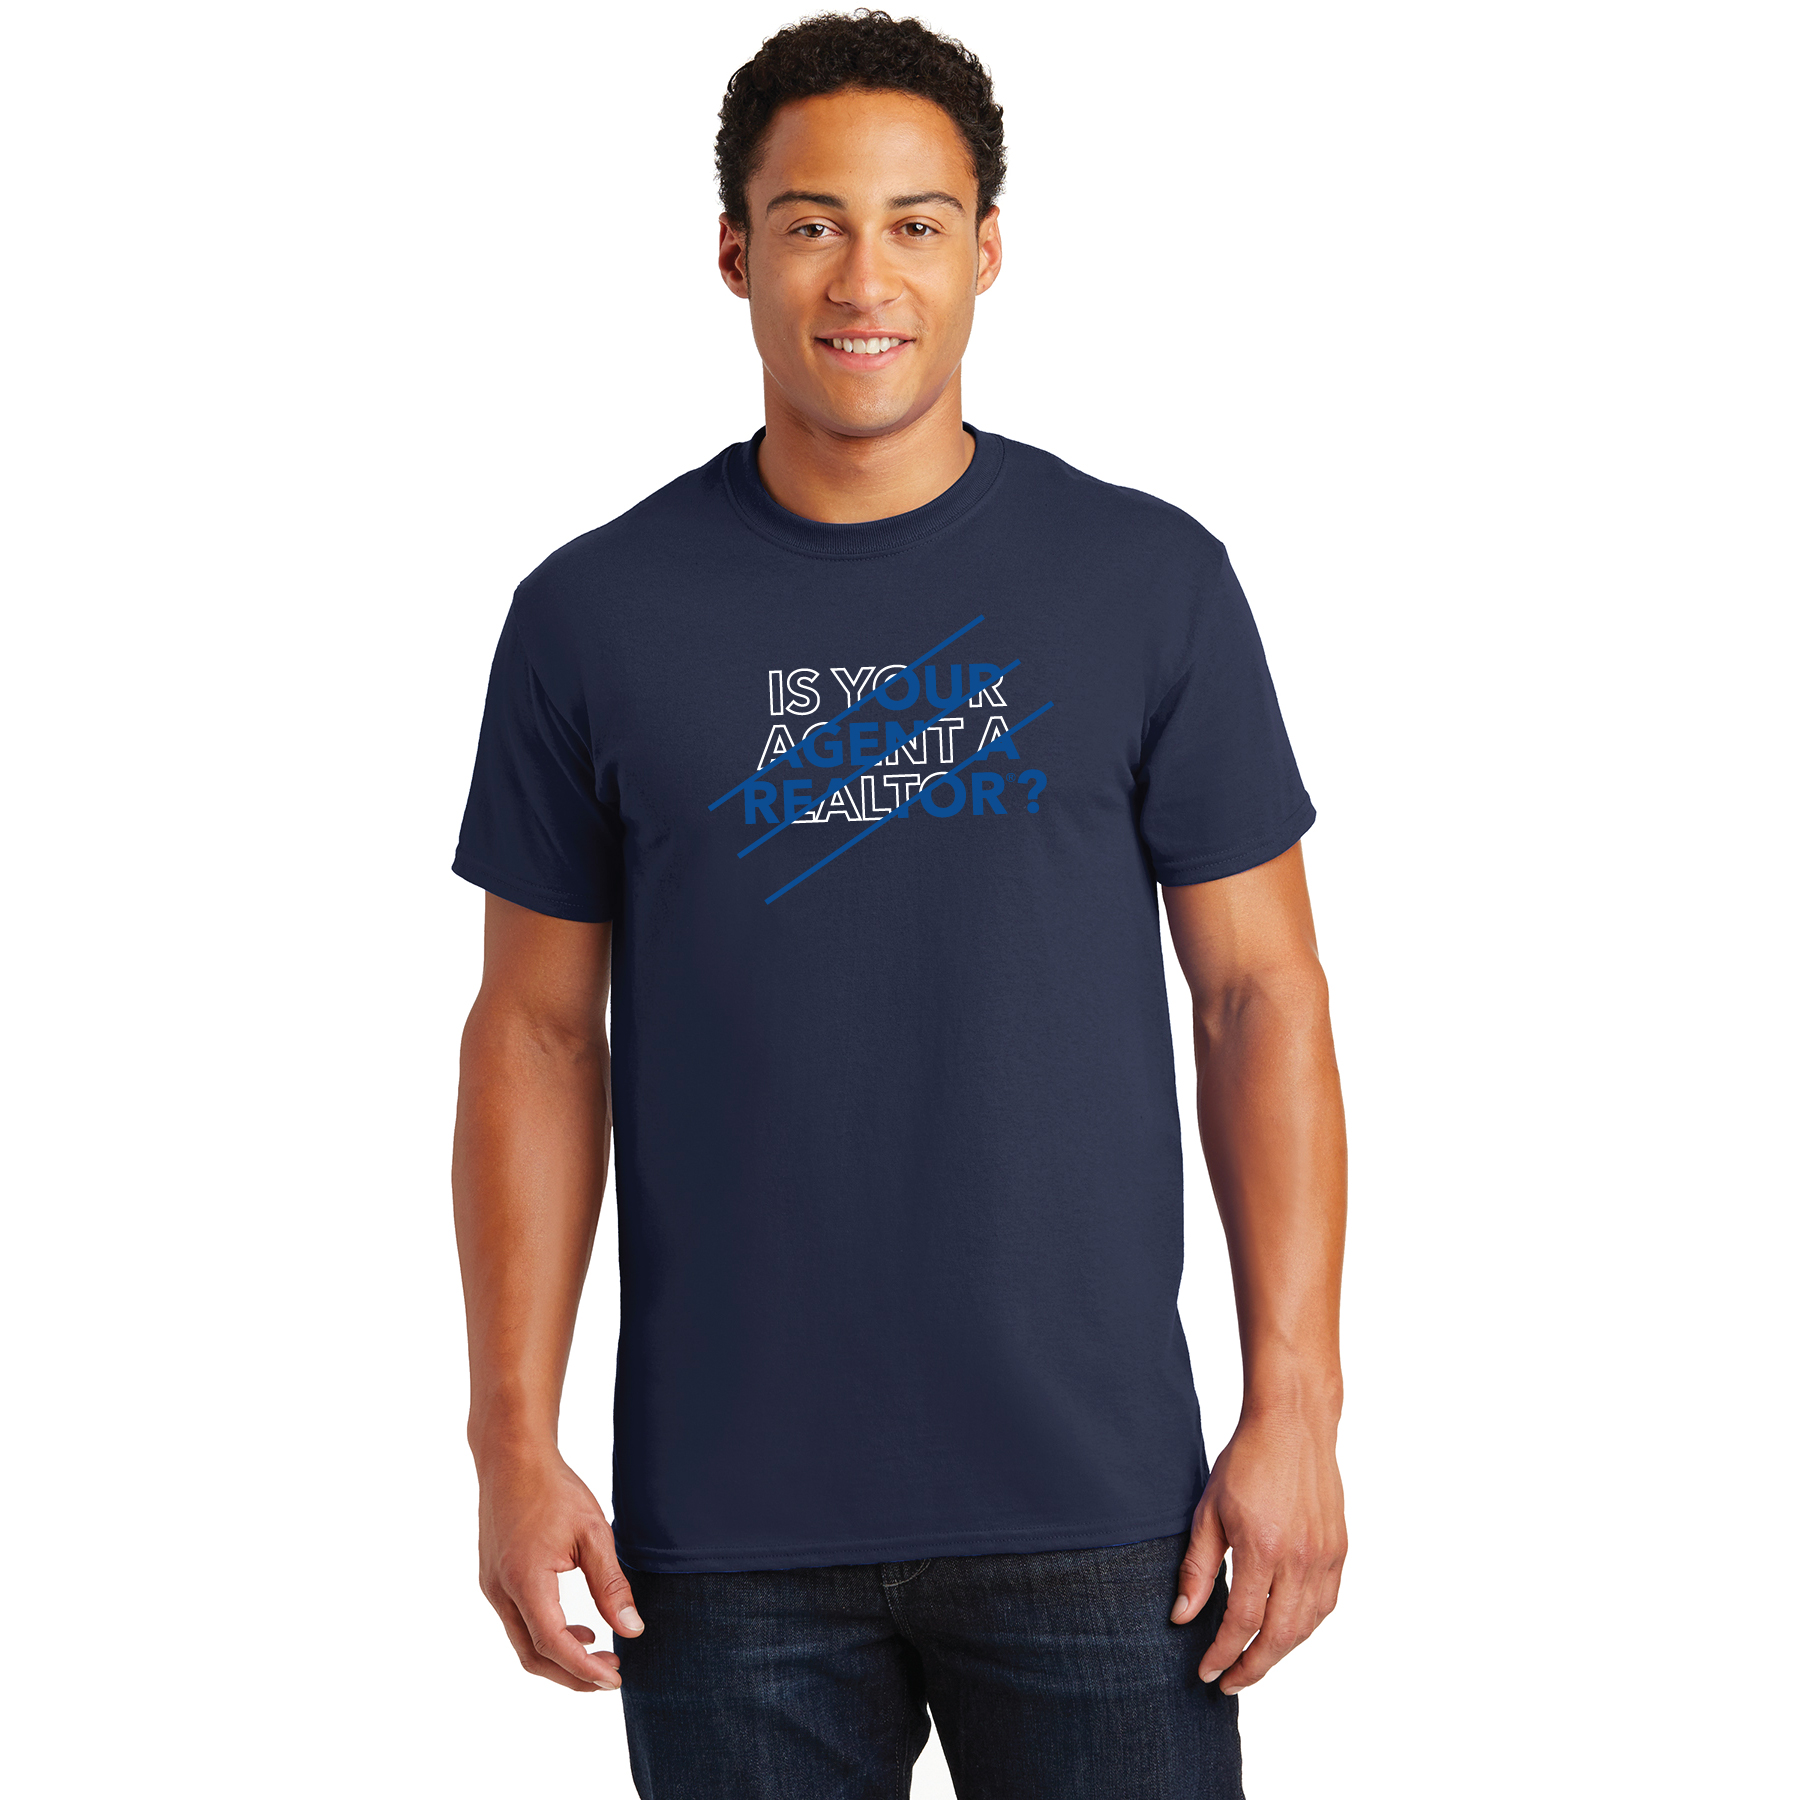 Is Your Agent a REALTOR® Navy Blue Tee Shirt TRSFR,twwr,ThatsWhoWeR,That's,TWWR,ThatWho,That'sWho,Twwr,Thats,Whos,We,Ares,Tees,T-shirt,Tee,Casual,Values,Tees,NewEra,Longs,Sleeves